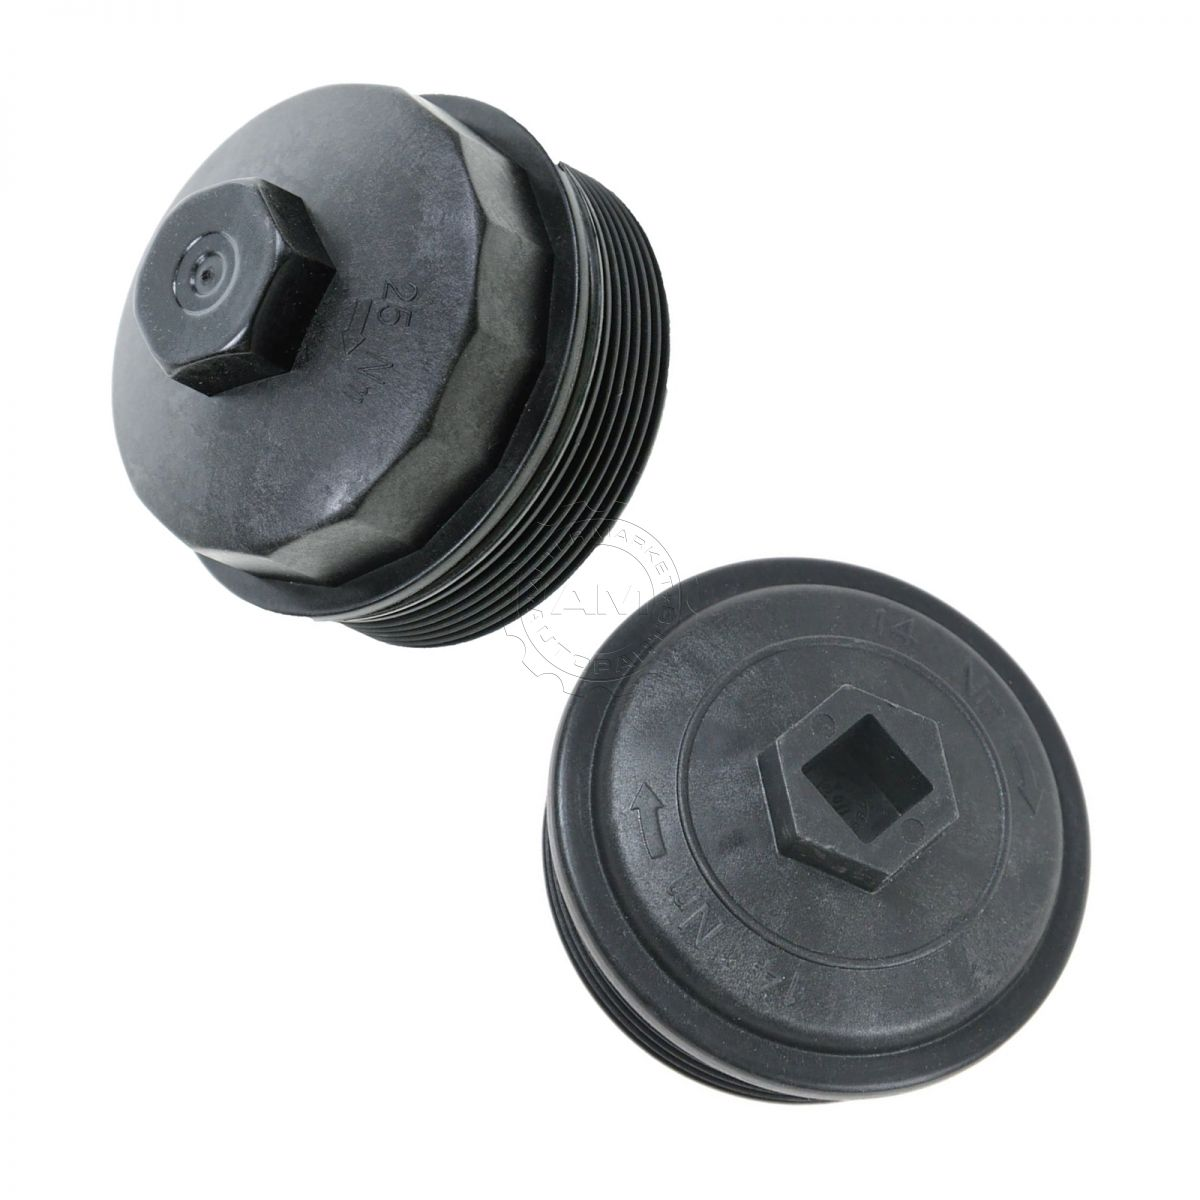 hight resolution of dorman oil filter housing cap fuel filter cap w gasket for ford f250 f350